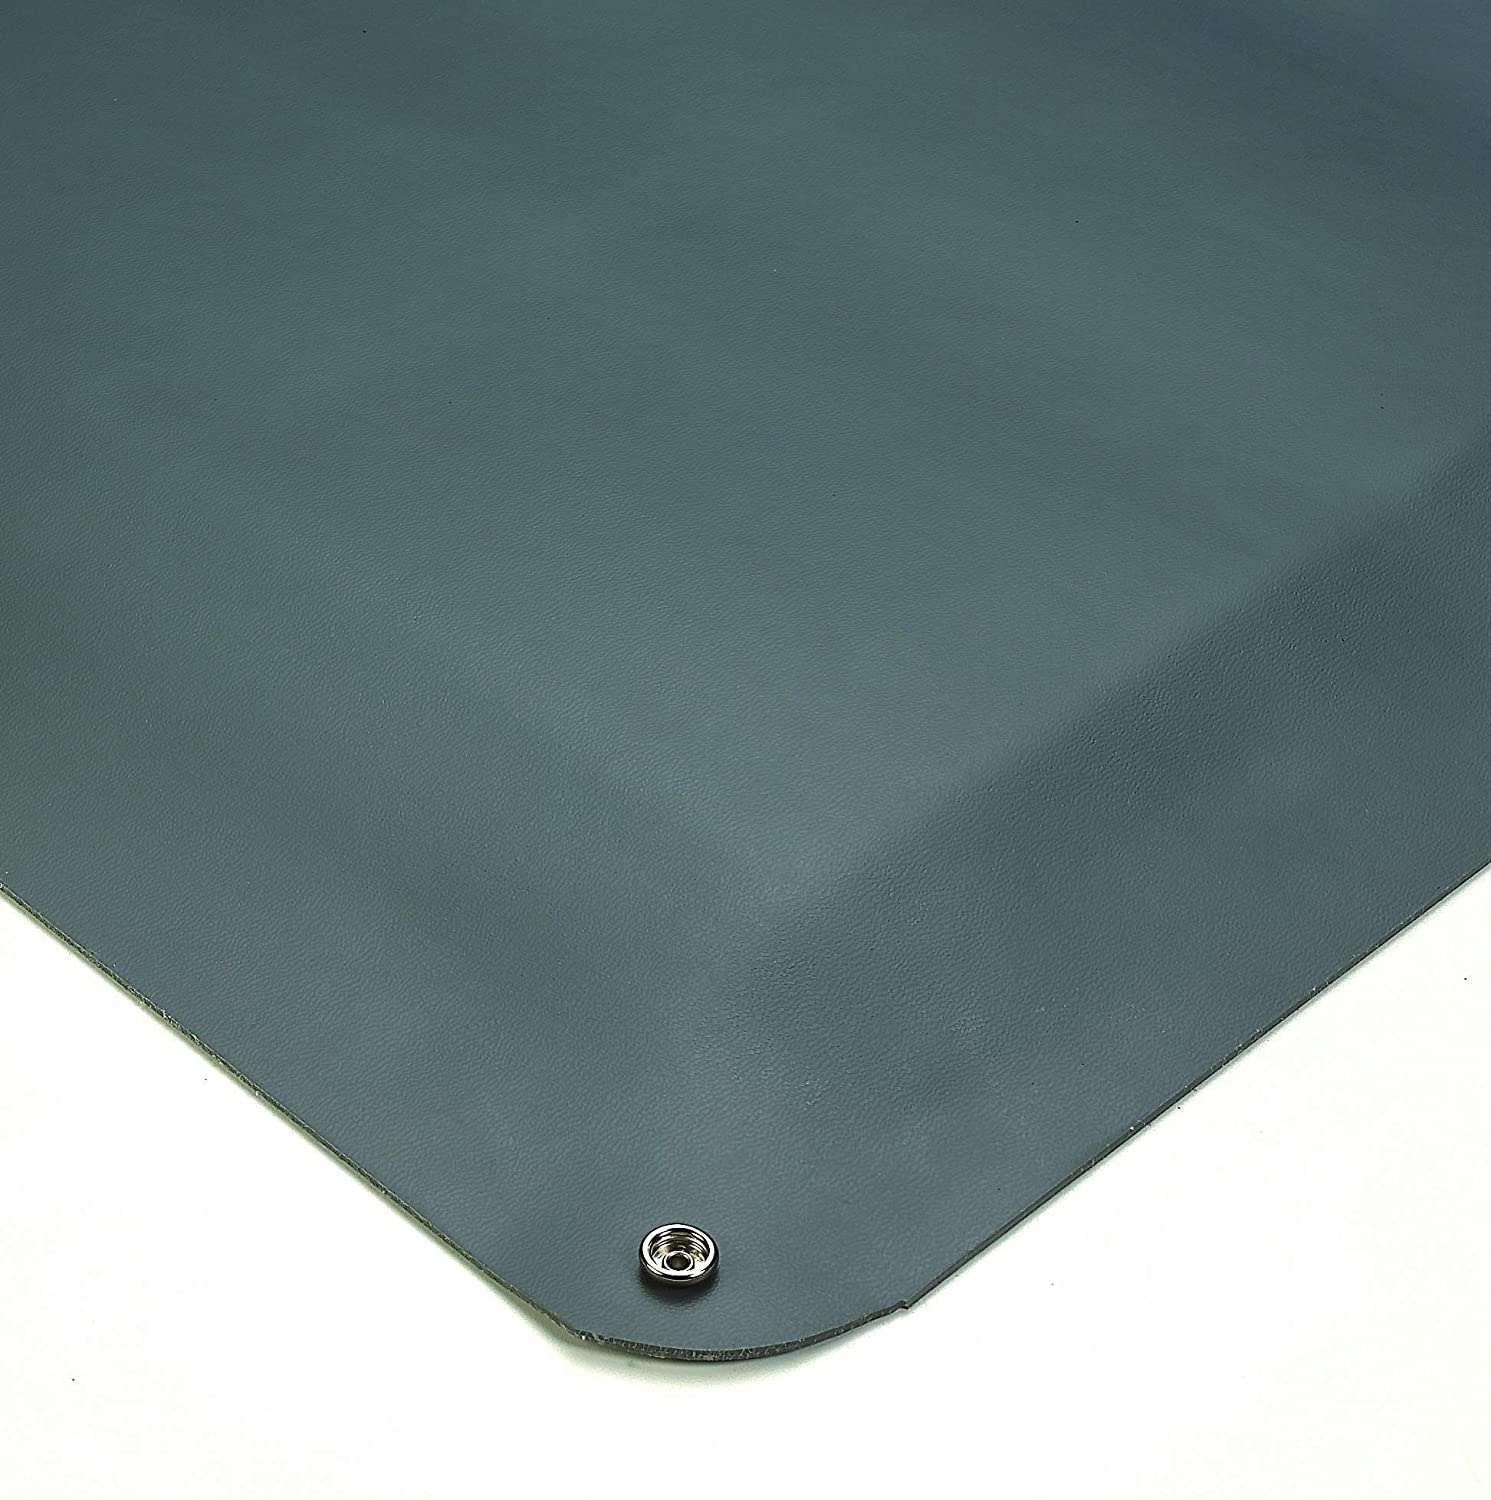 Wearwell Natural Rubber 791 Static Dissipative Anti-Fatigue Mat with Snap, Safety Beveled Edges, for Dry Areas, 3' Width x 5' Length x 1/2 Thickness, Gray by Wearwell Industrial  B00065UCKW